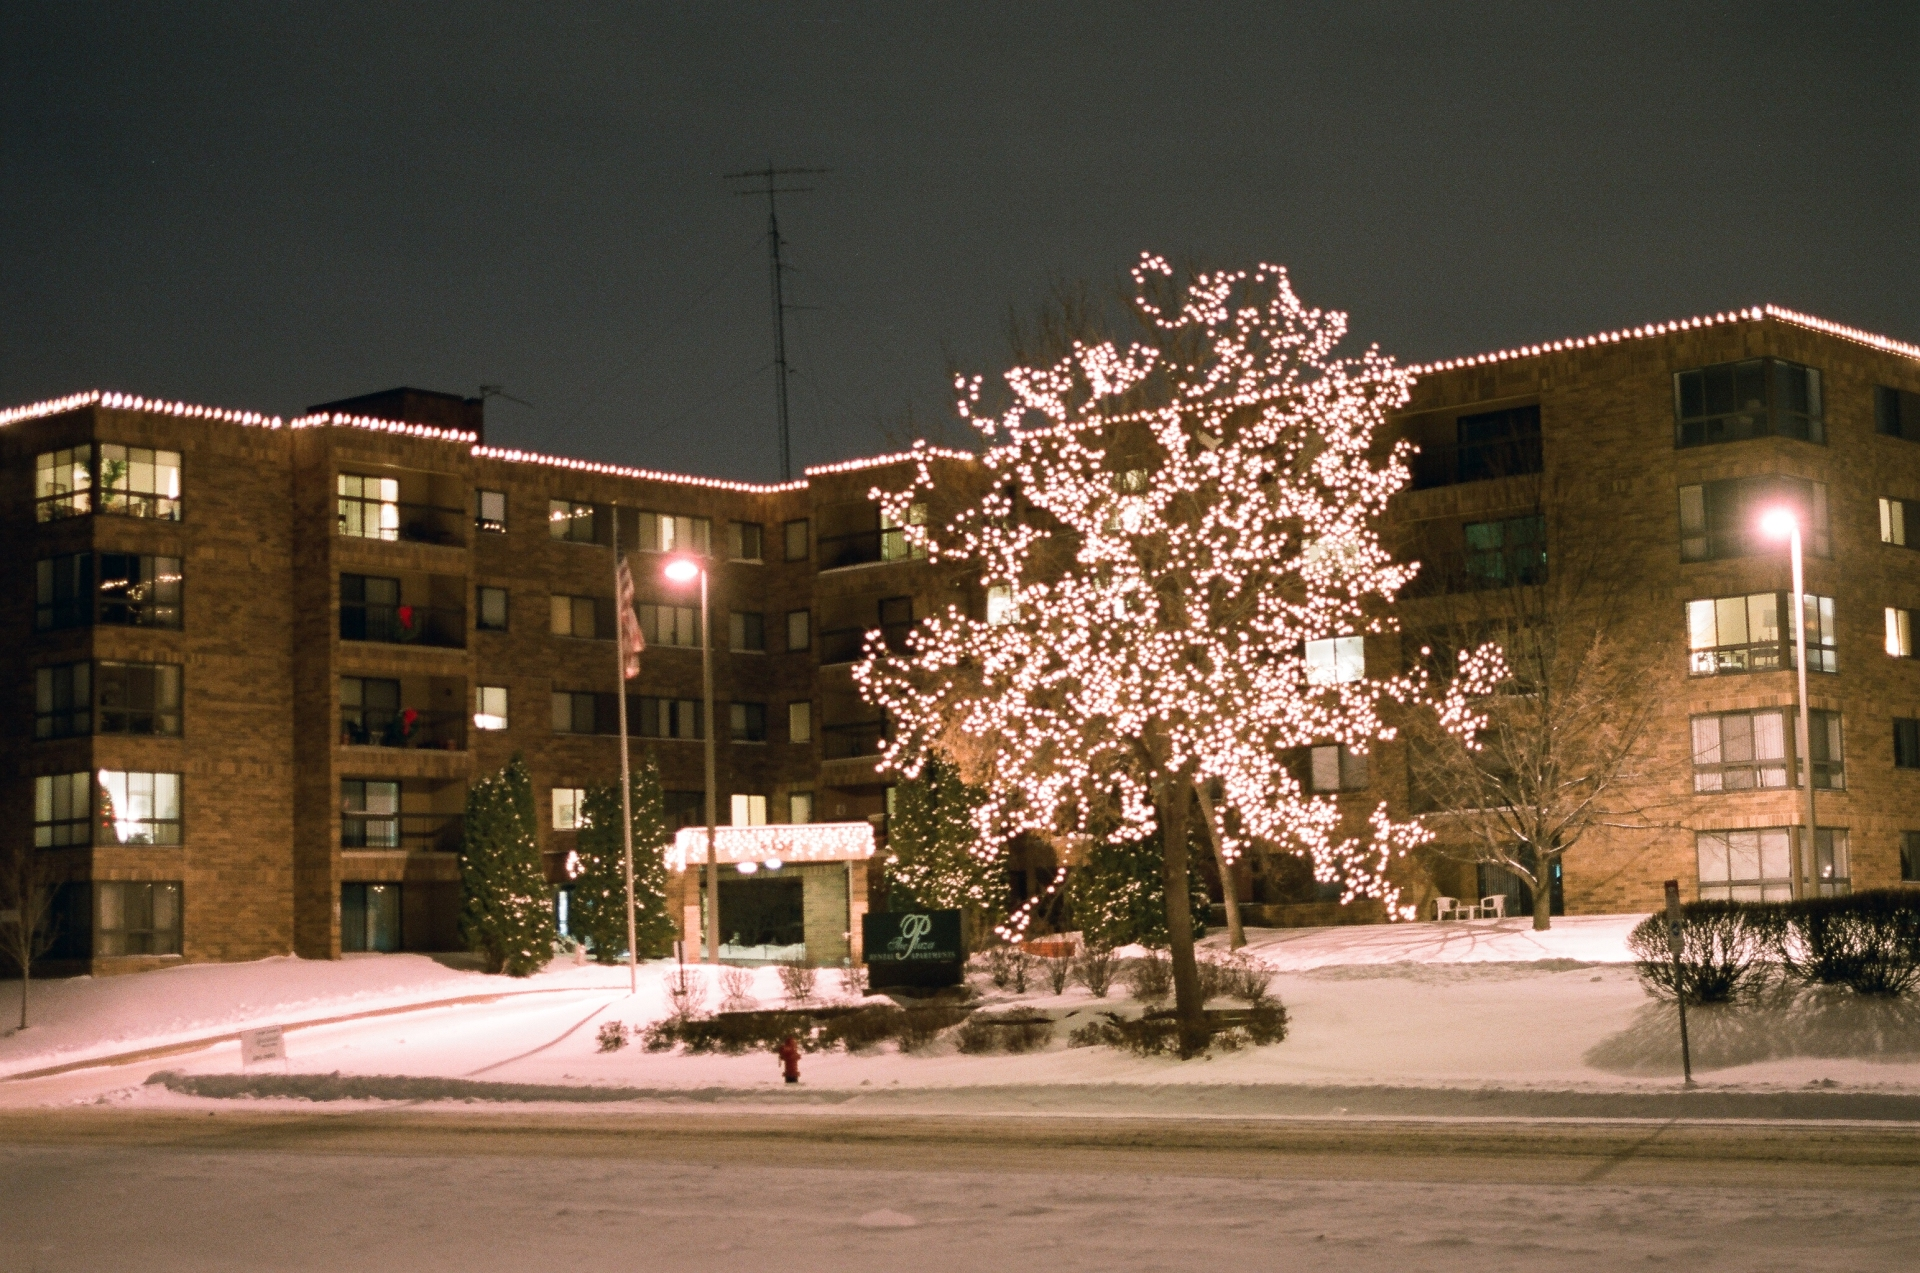 Classic LED Holiday lighting on Parapet and Tree